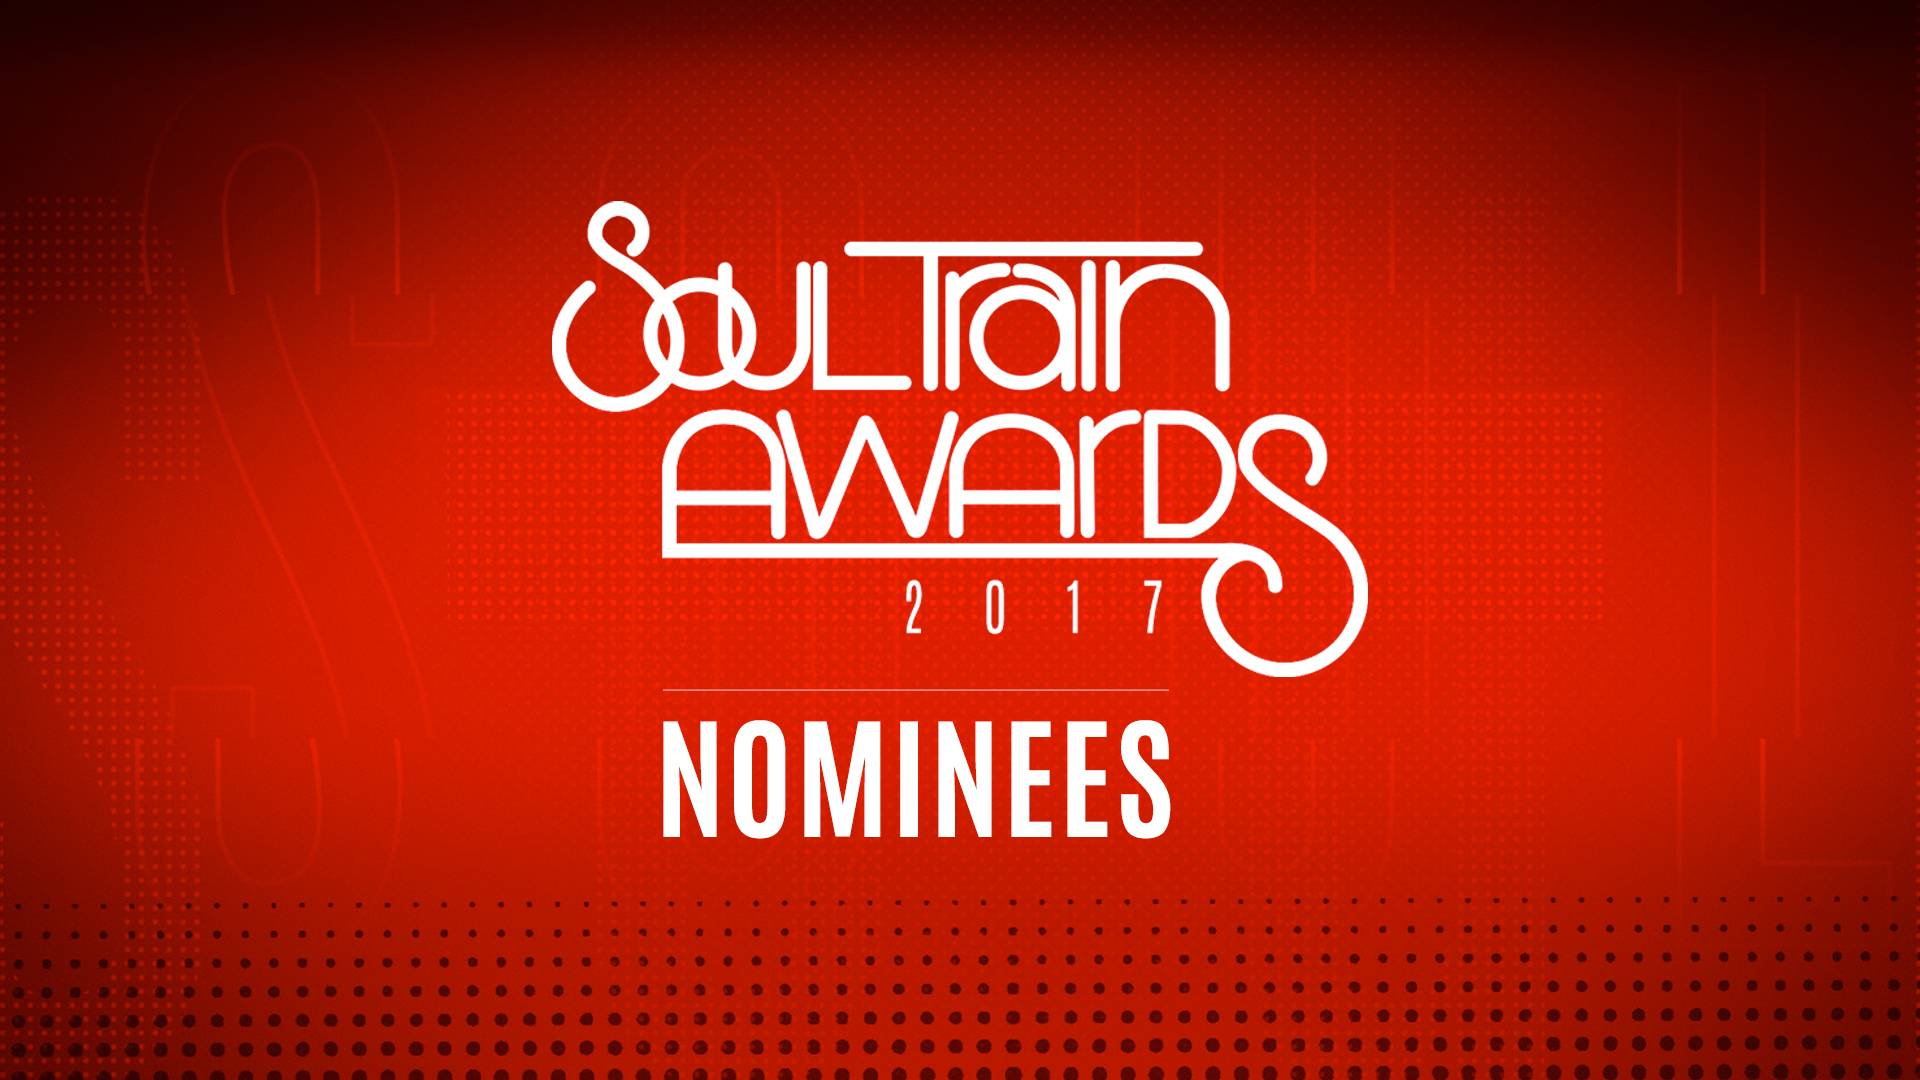 NOMINEES - See all the Soul Train Awards '17 nominees.